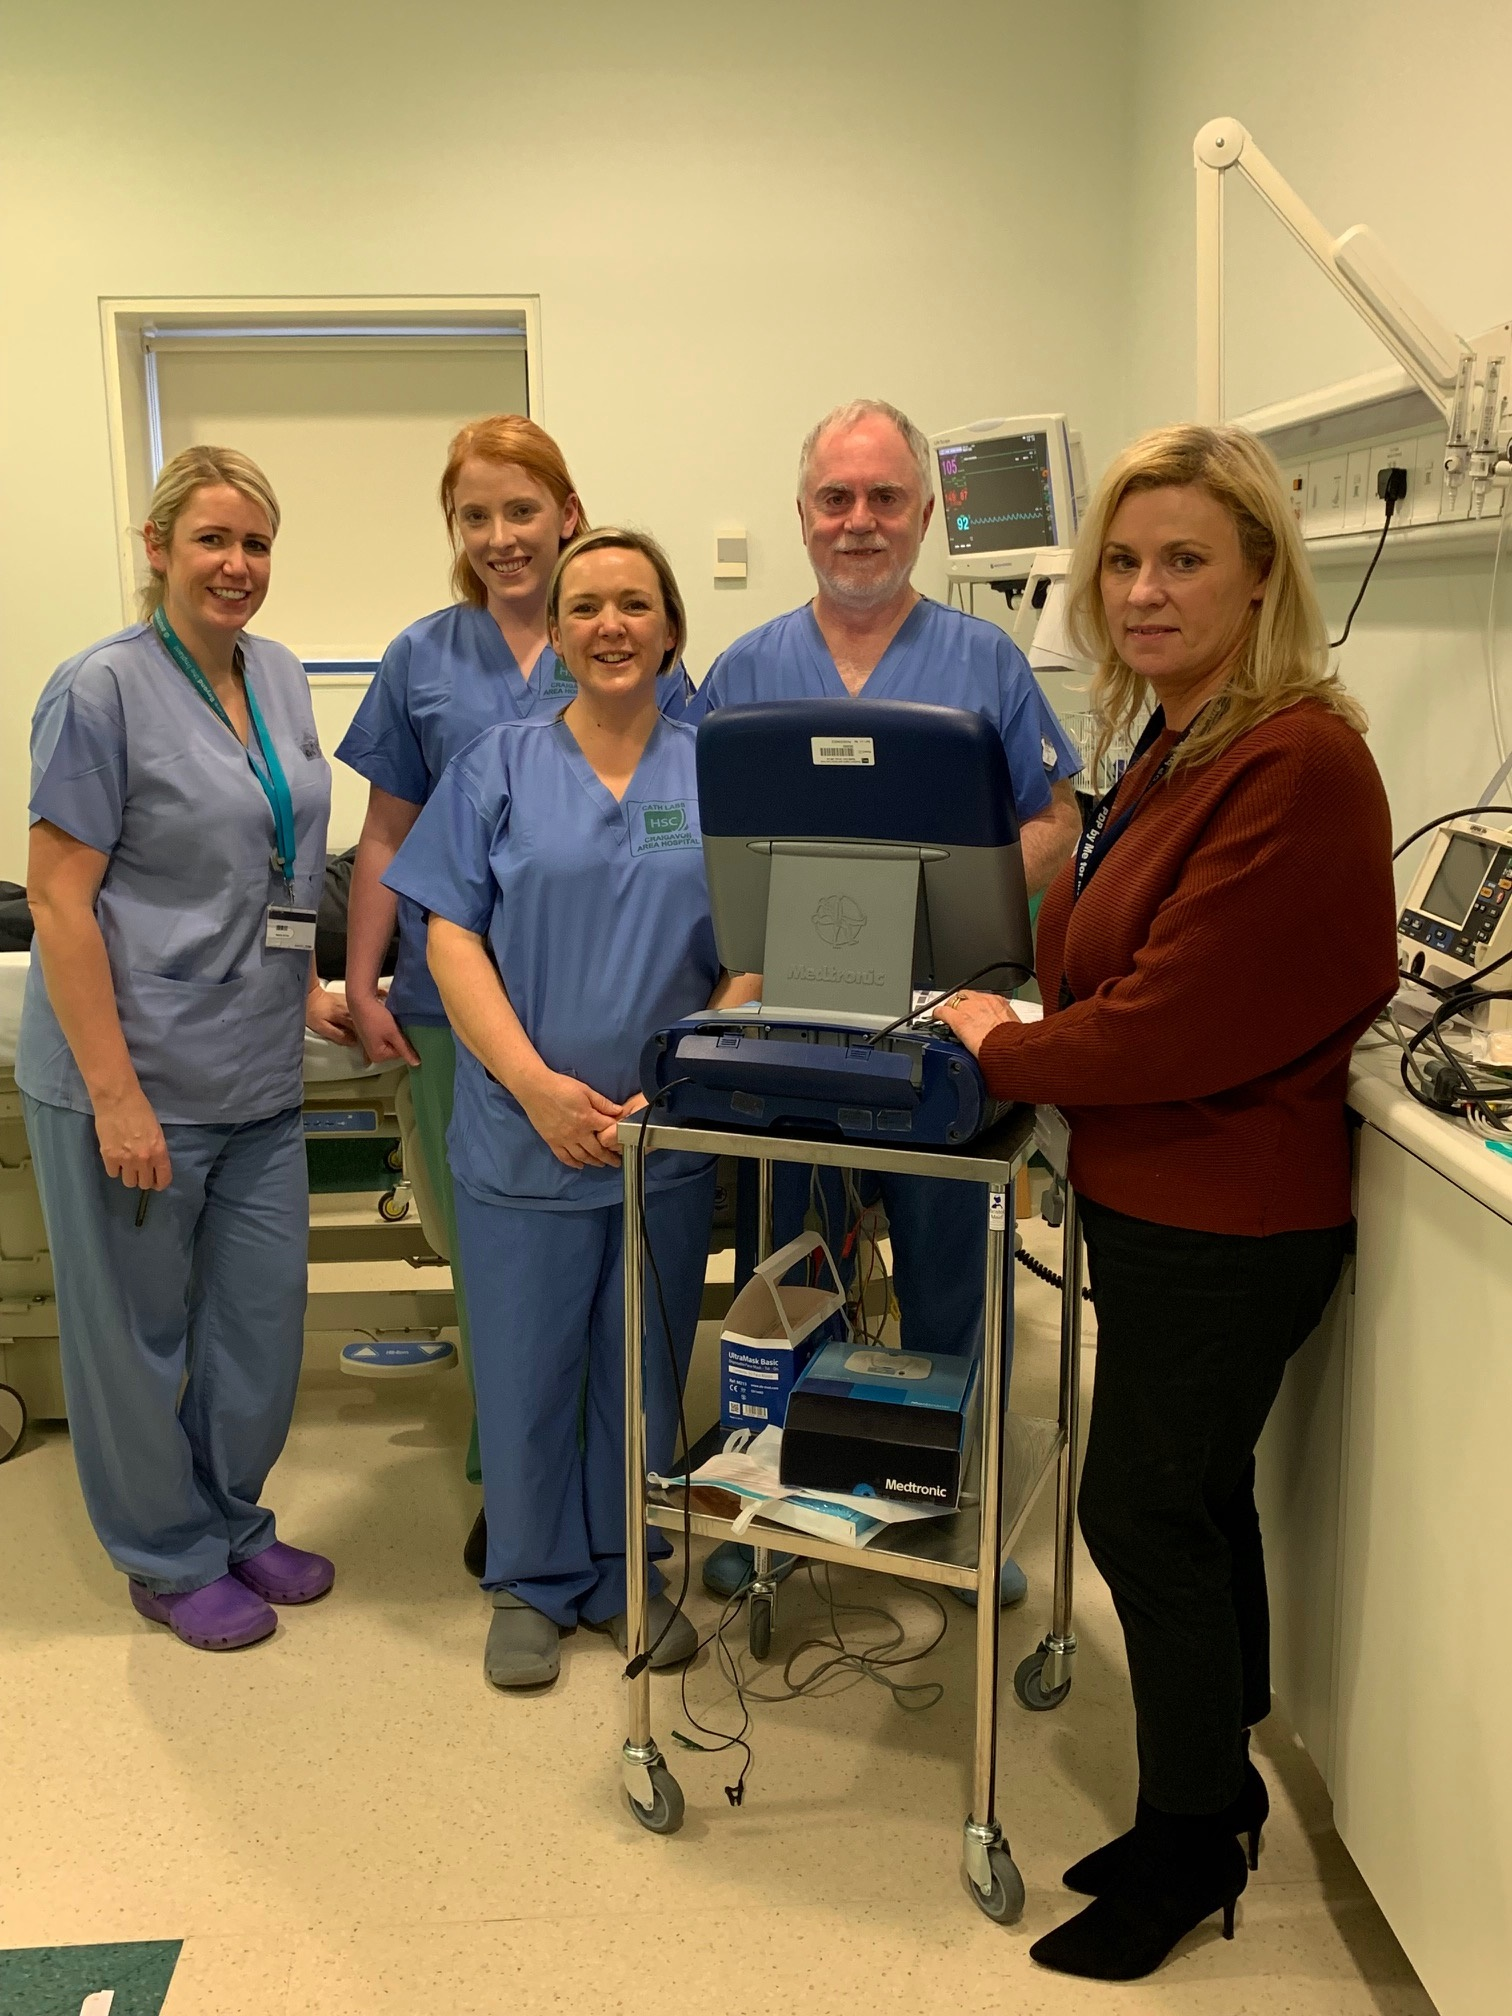 UK Recognition for Clinical Physiologists - Newry online newspaper